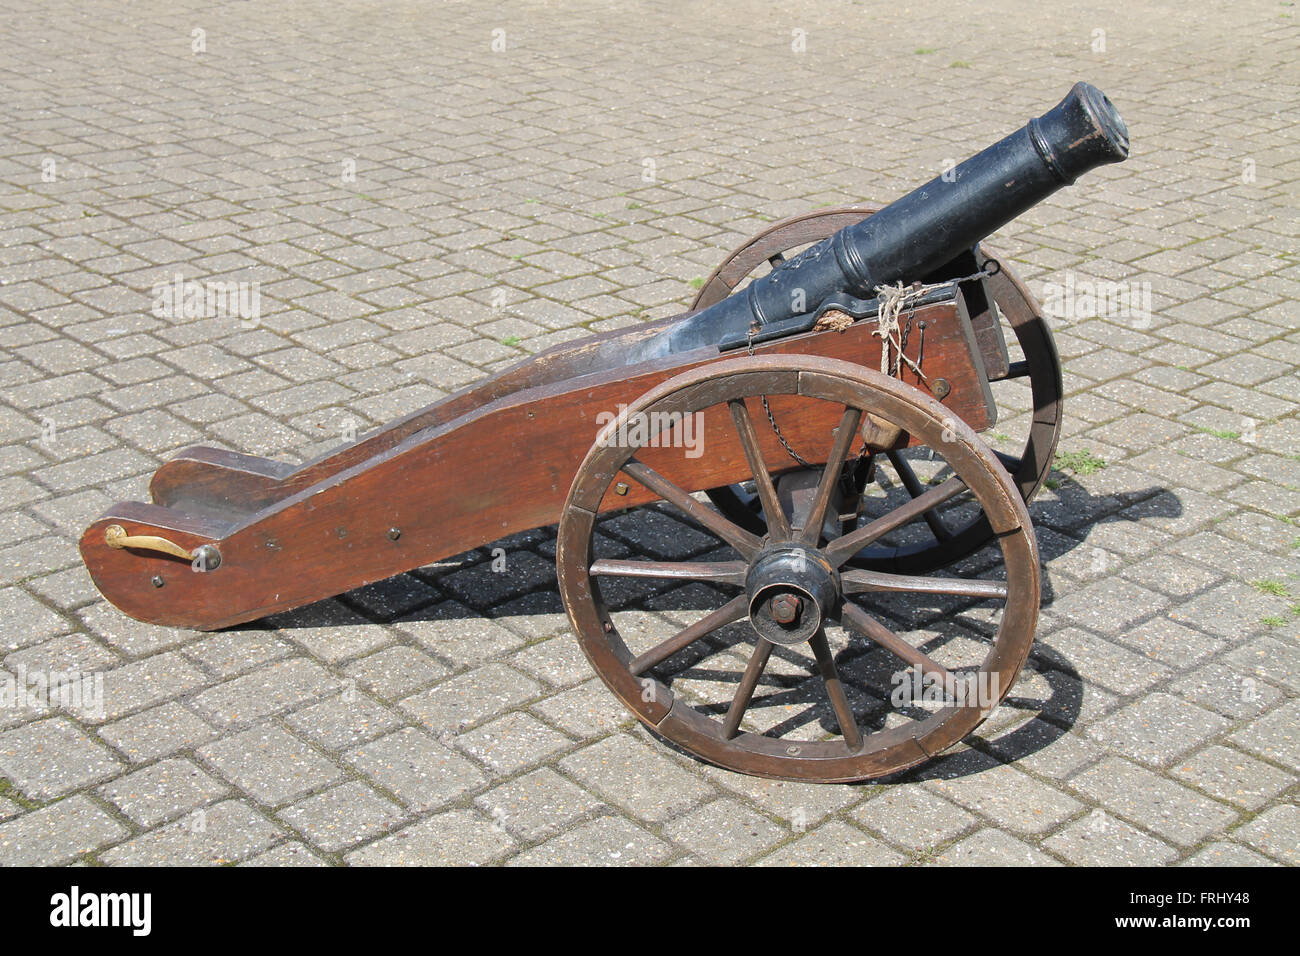 A Vintage Naval Cannon on Large Wooden Wheels. - Stock Image